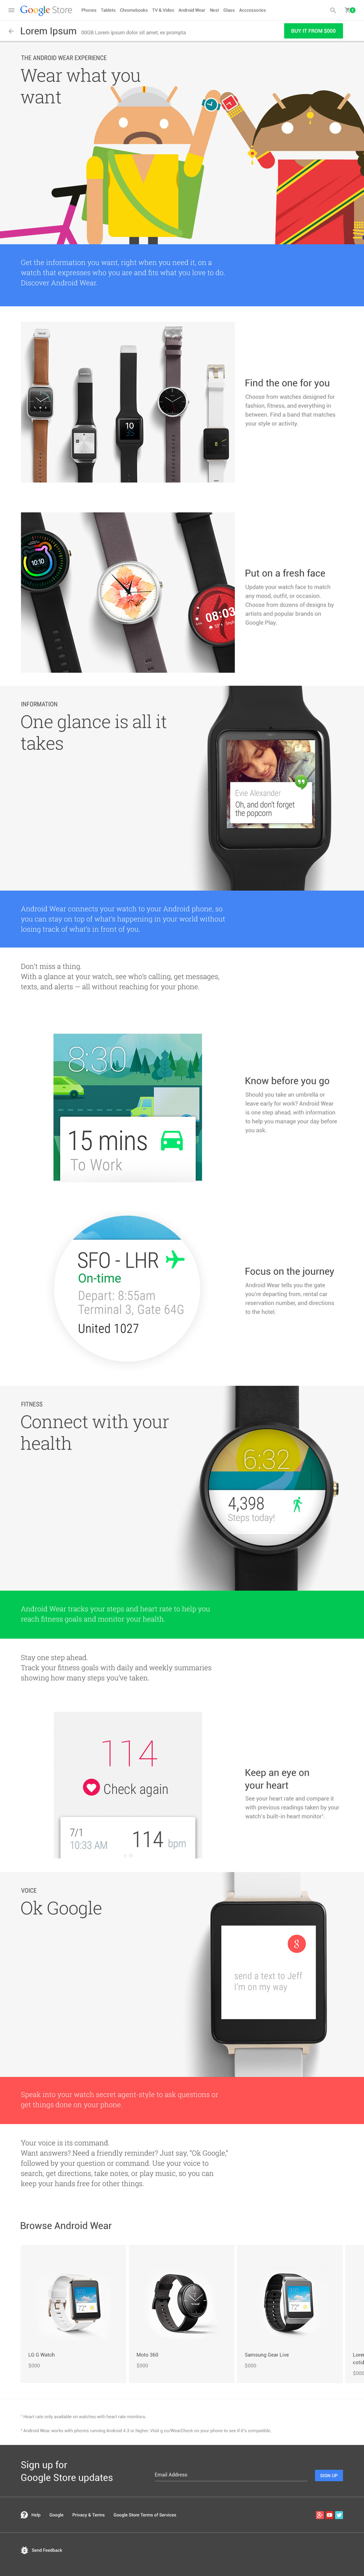 Android Wear Platform Story